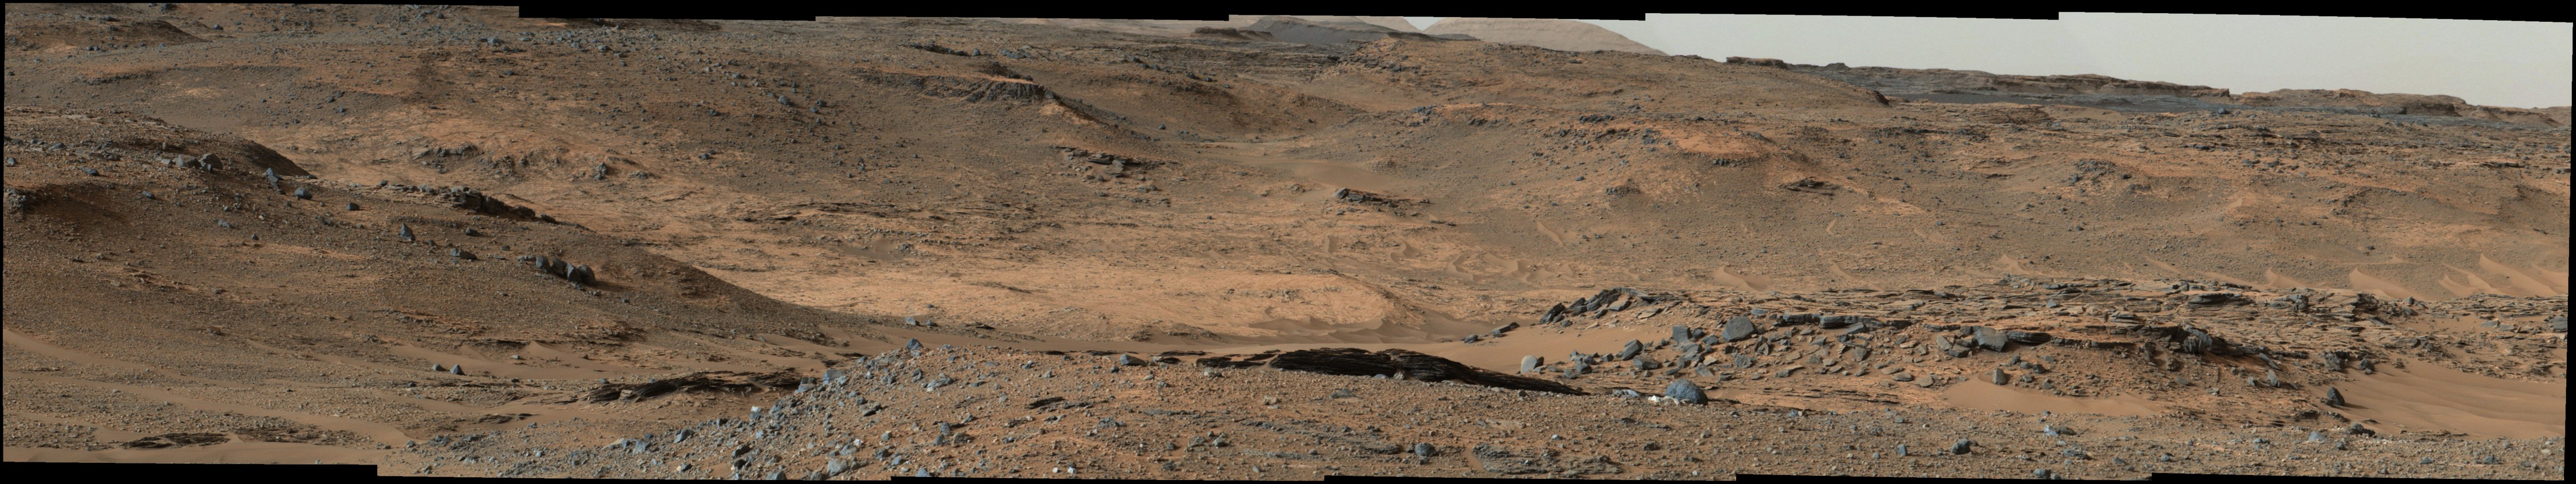 nasa-msl-curiosity-rover-amargosa-valley-pia18473-full r